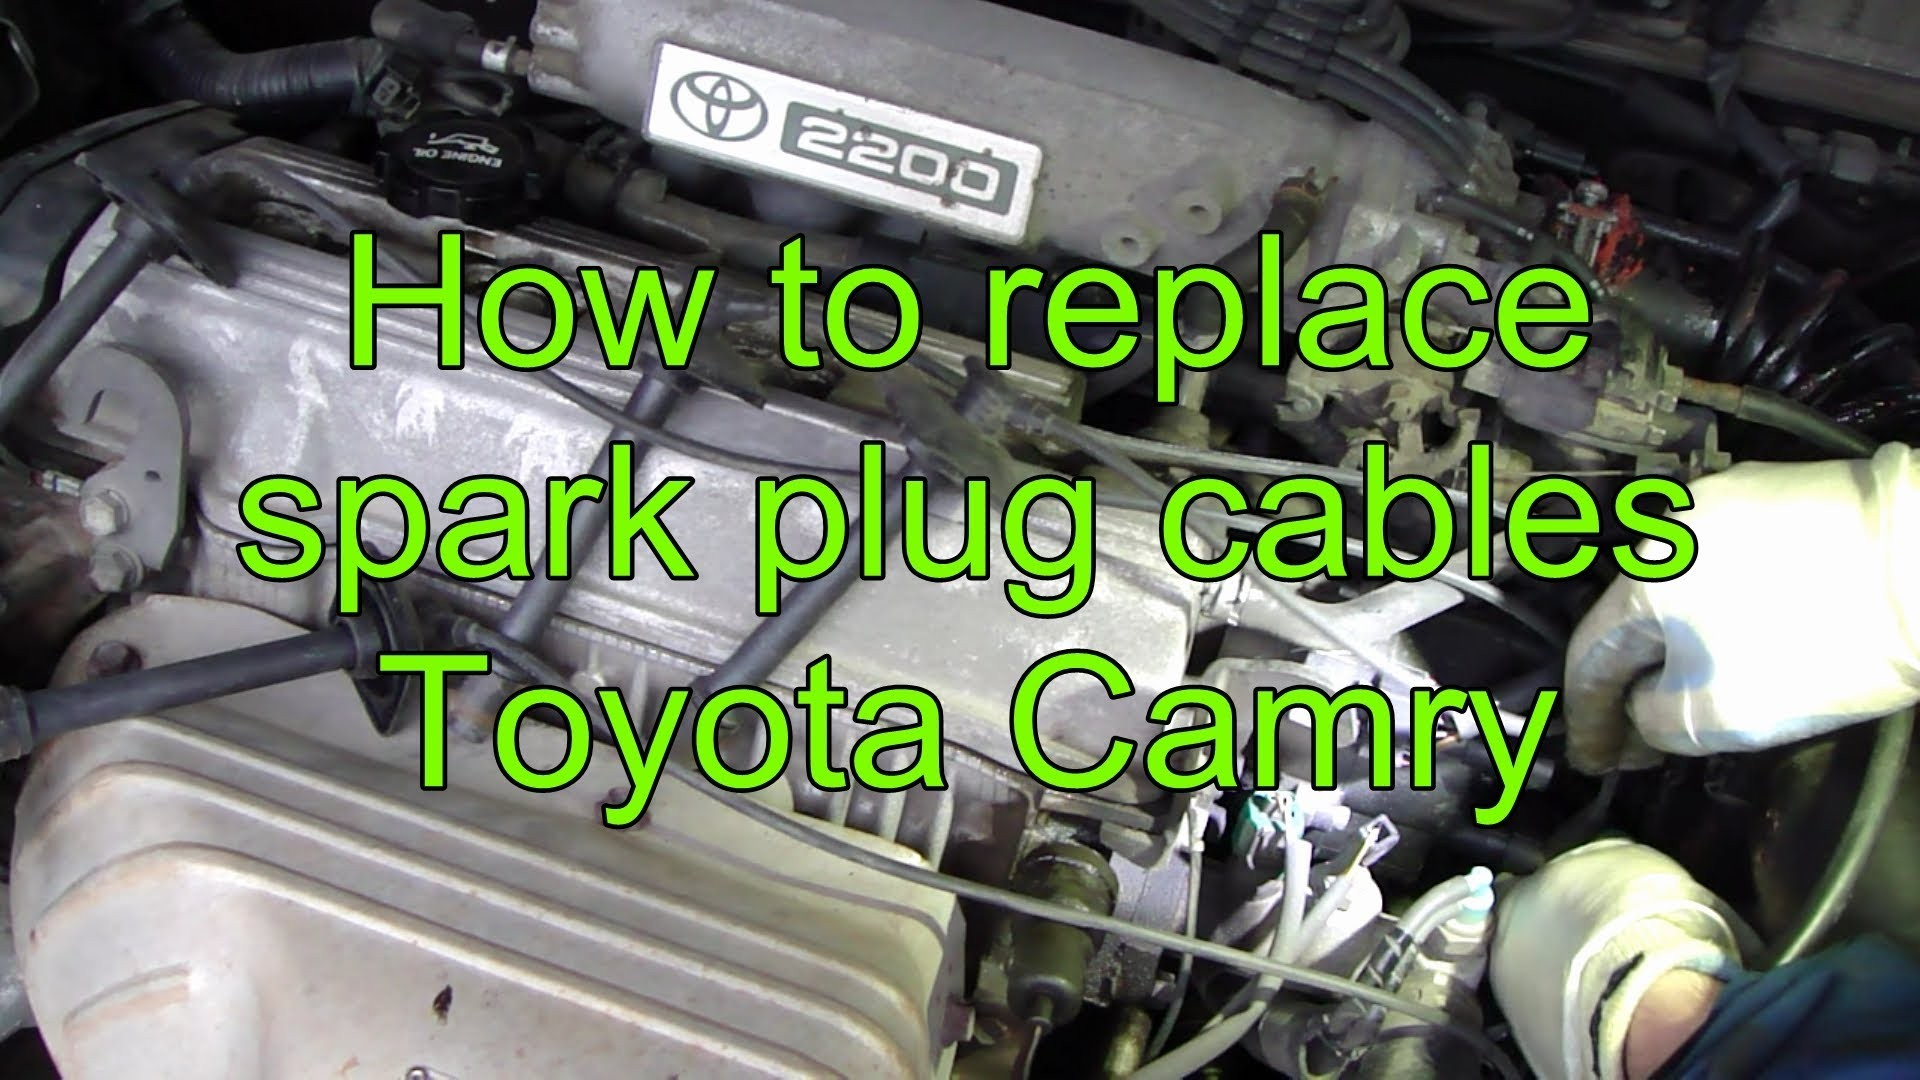 99 toyota Camry Engine Diagram How to Replace Spark Plug Cables toyota Camry Of 99 toyota Camry Engine Diagram